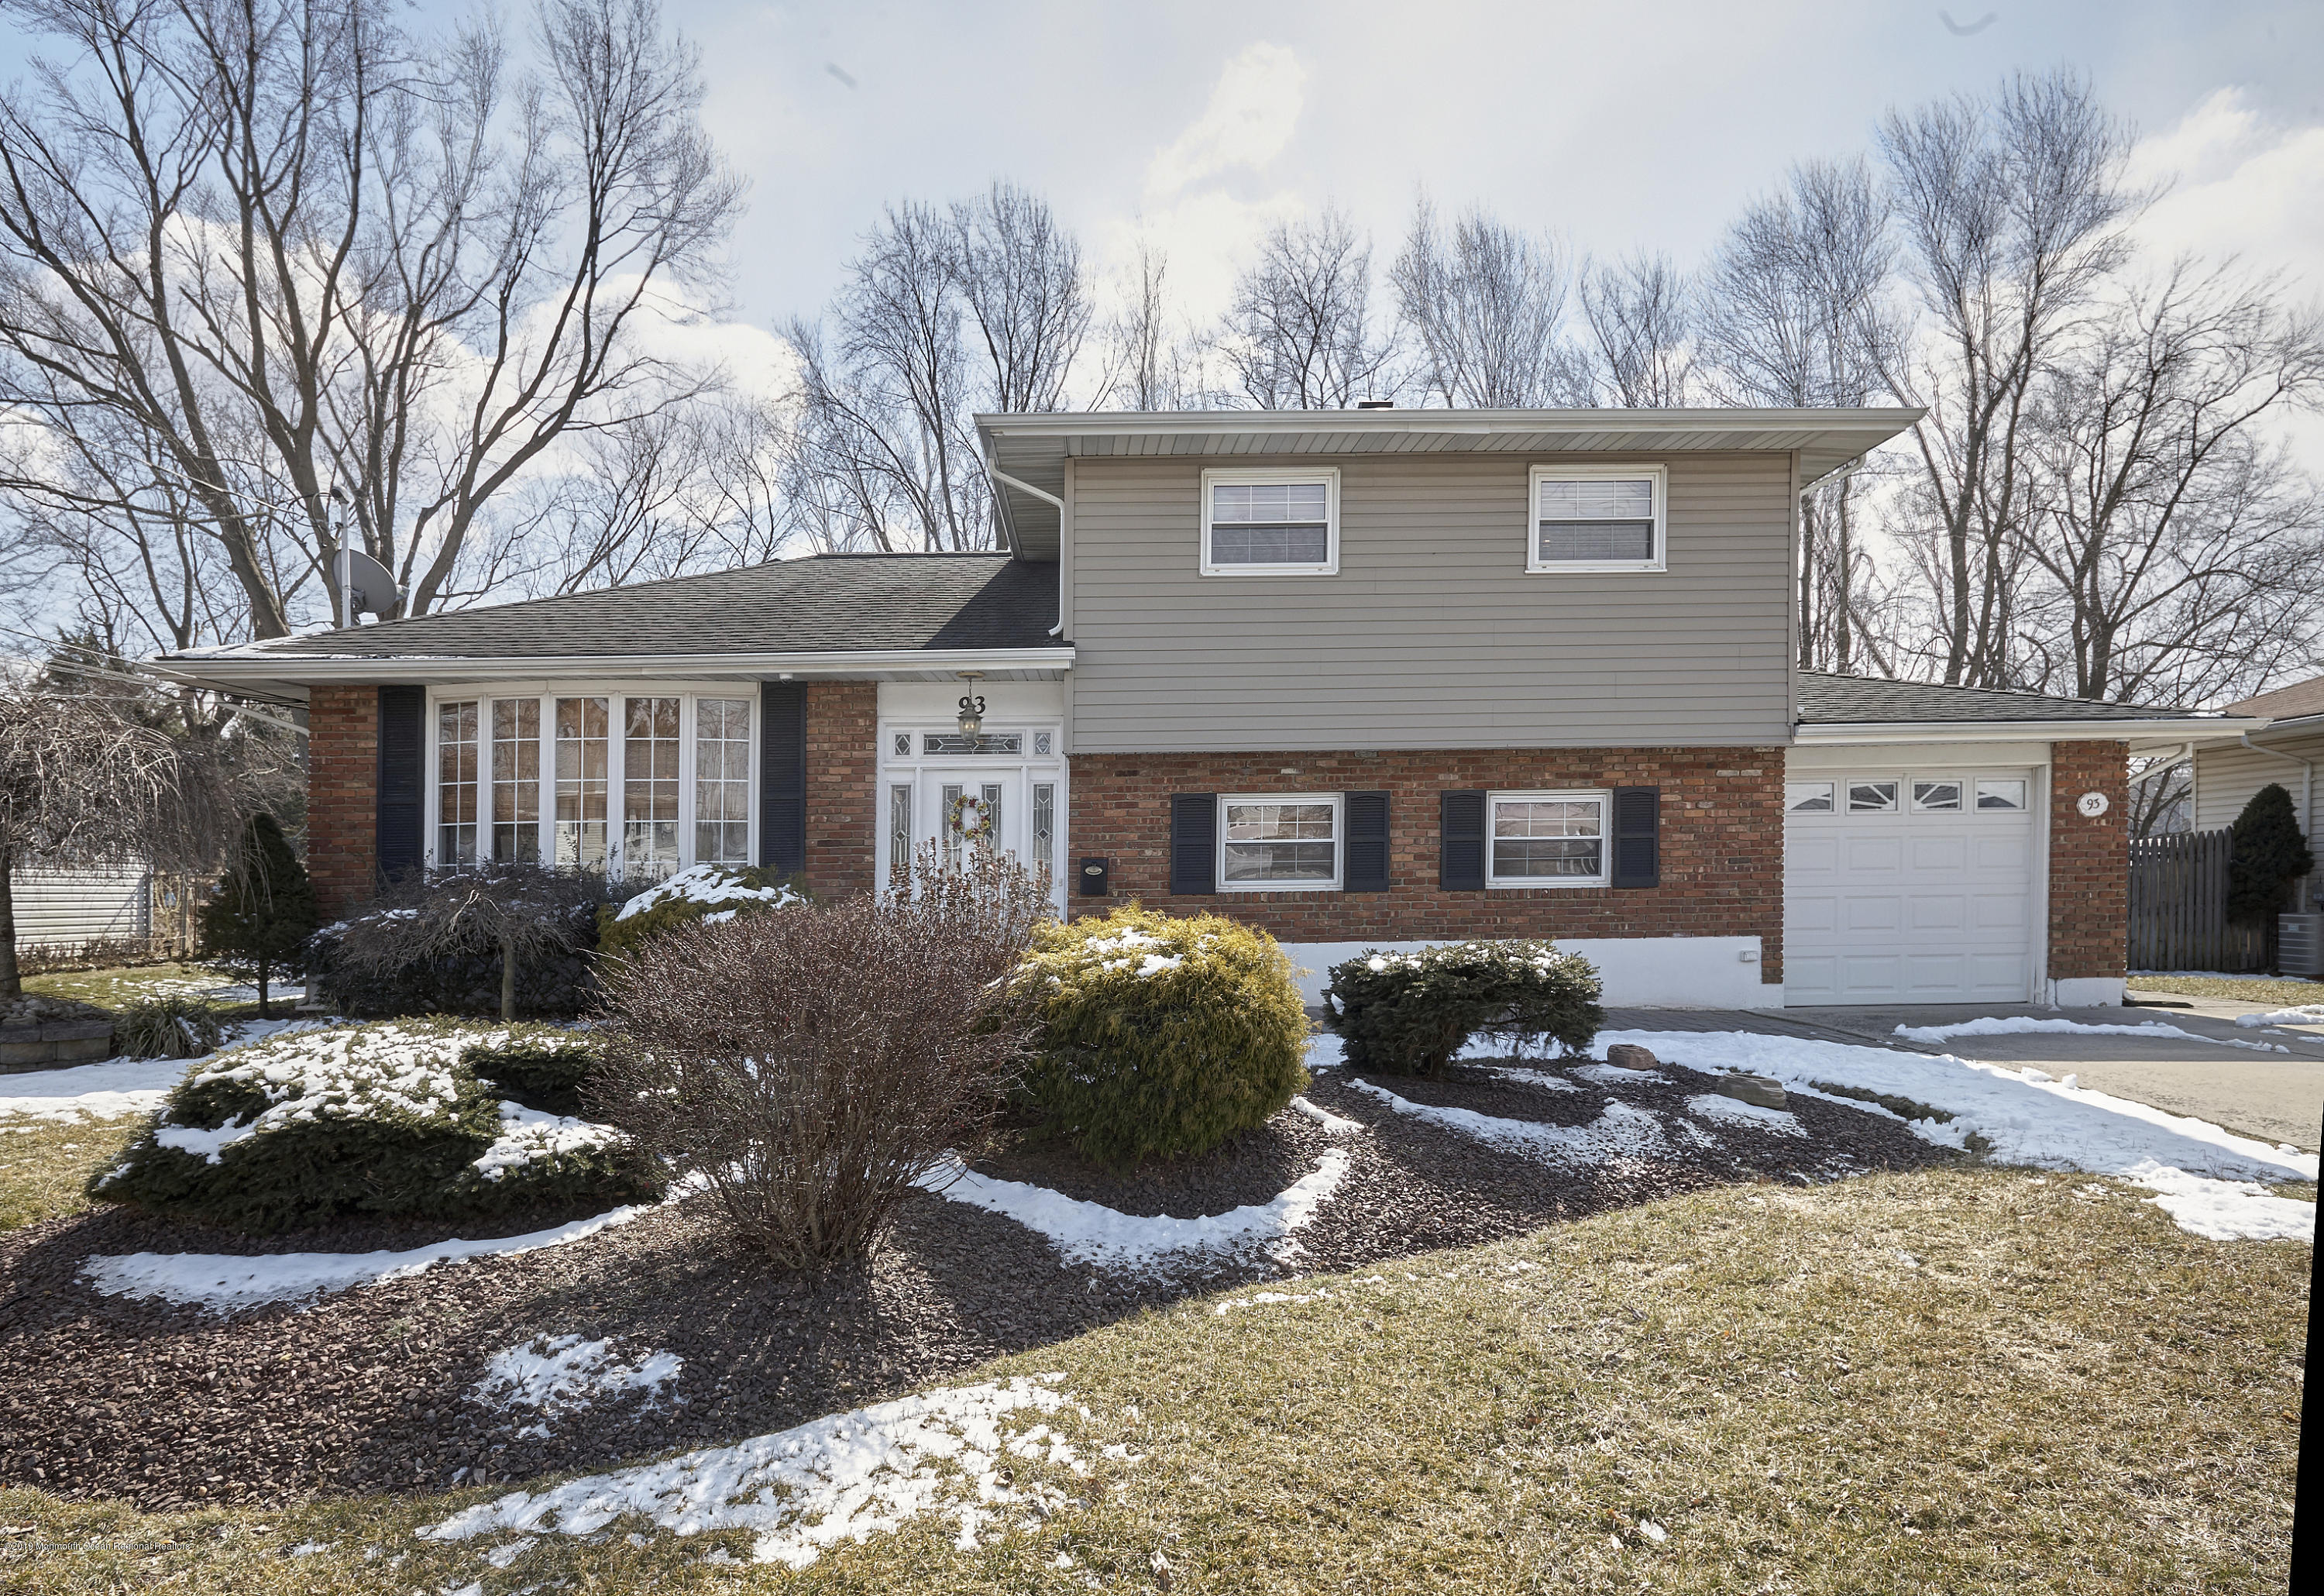 93 Wynnewood Ct, Freehold, NJ 07728 - MLS 21909457 - Coldwell Banker